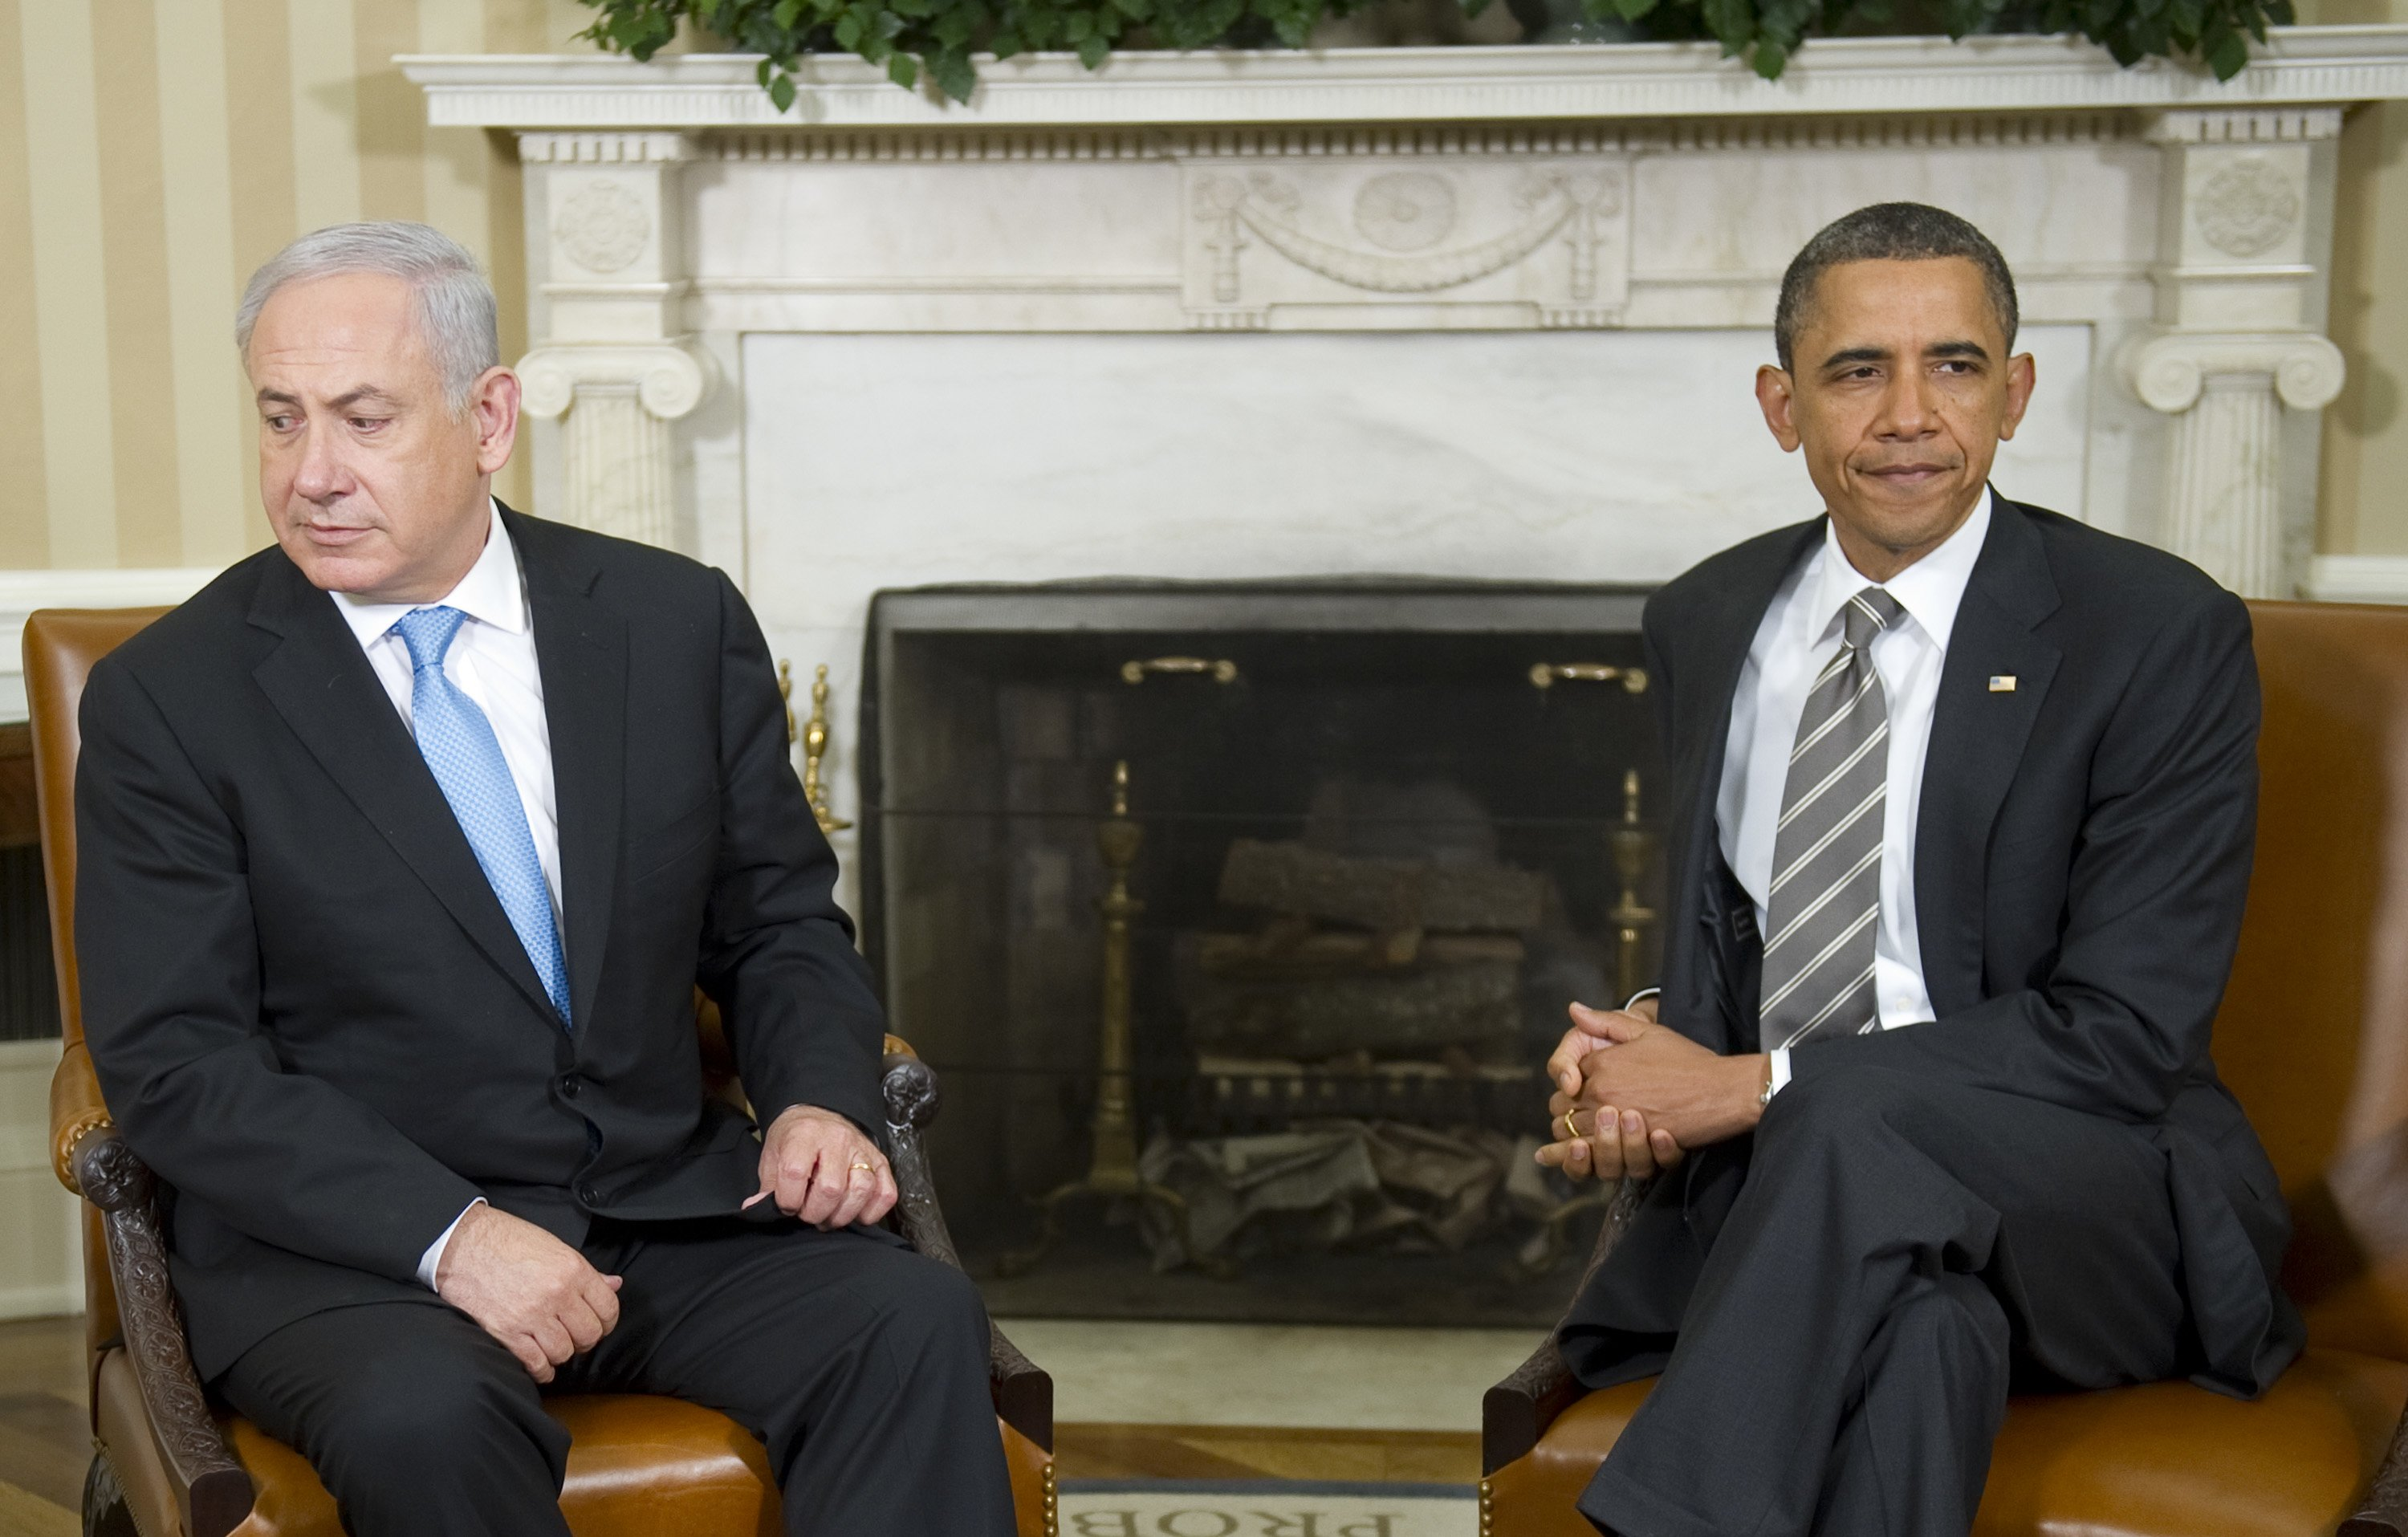 "TOPSHOTS US President Barack Obama (R) meets with Israeli Prime Minister Benjamin Netanyahu in the Oval Office of the White House in Washington, DC, May 20, 2011. Obama announced on Thursday in his long-awaited speech on the ""Arab Spring"" revolts that territorial lines in place before the 1967 Arab-Israeli war should be the basis for a peace deal, a move Netanyahu has long opposed.    TOPSHOTS / AFP PHOTO / Jim WATSON (Photo credit should read JIM WATSON/AFP/Getty Images)"